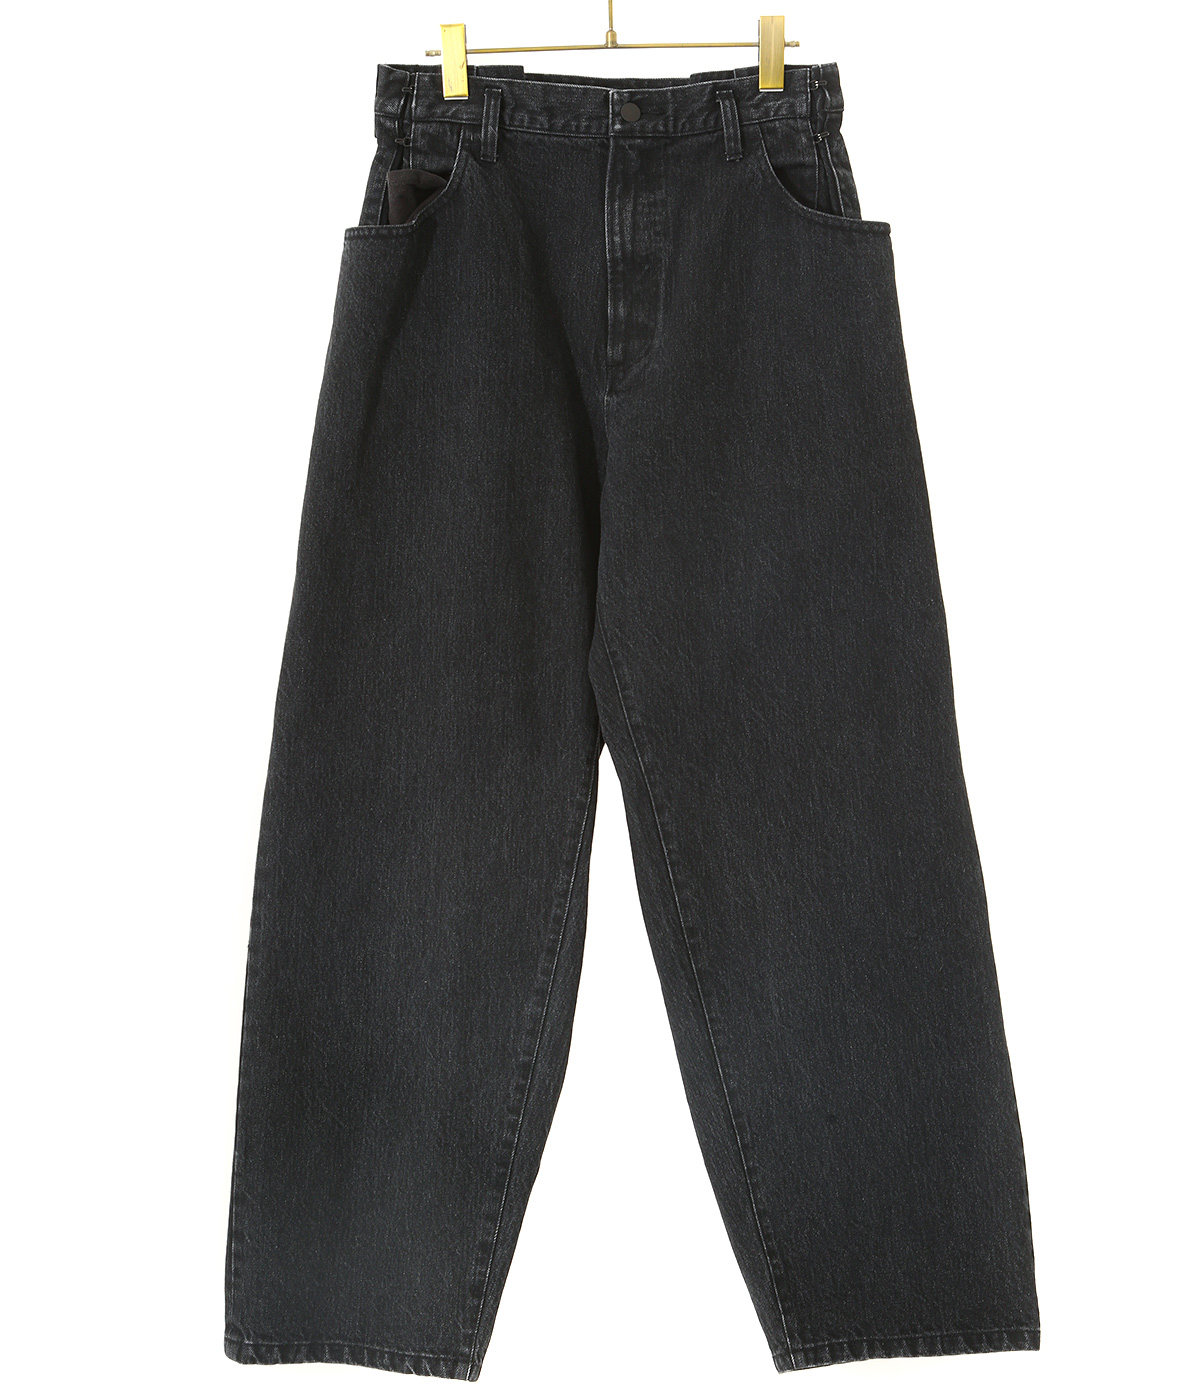 EX WIDE HOOKED DENIM JEANS